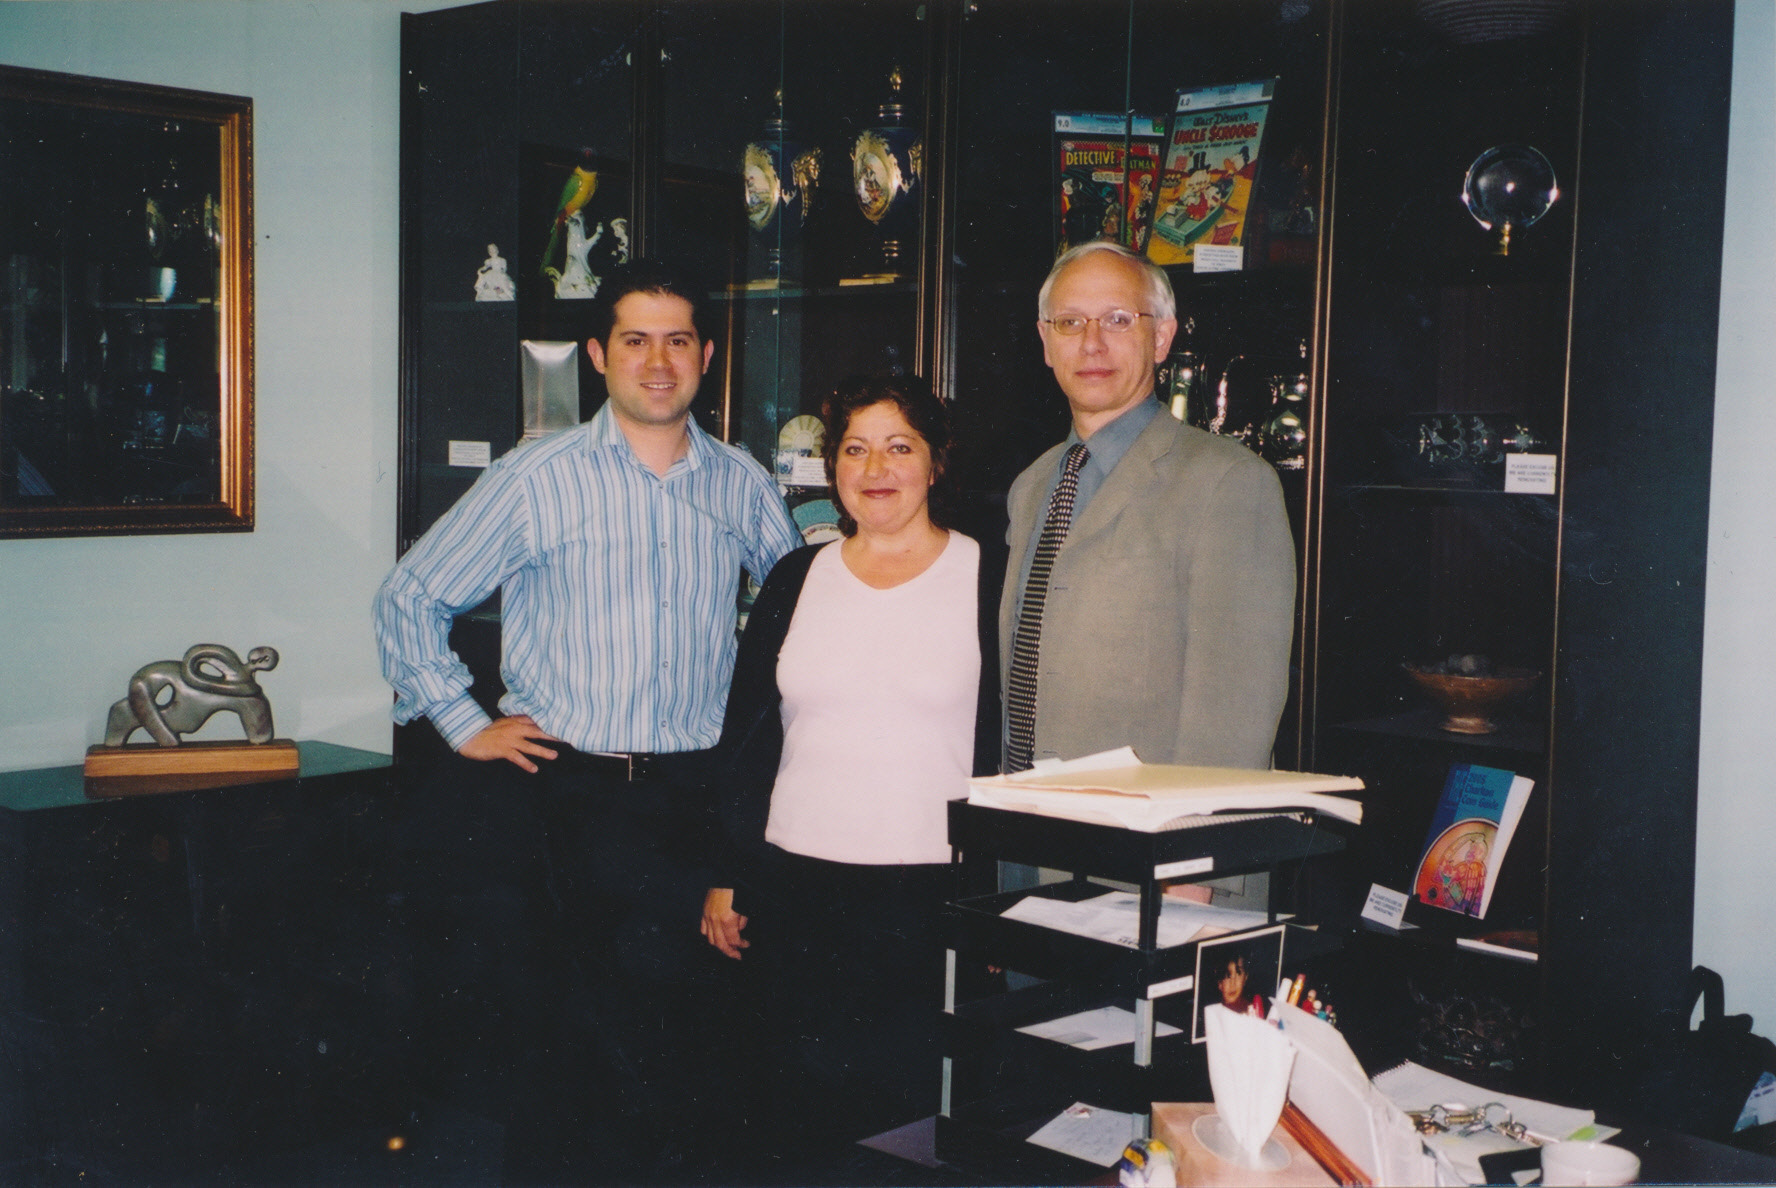 Mike Joffre, Lucy Raposo & Bill Whetstone